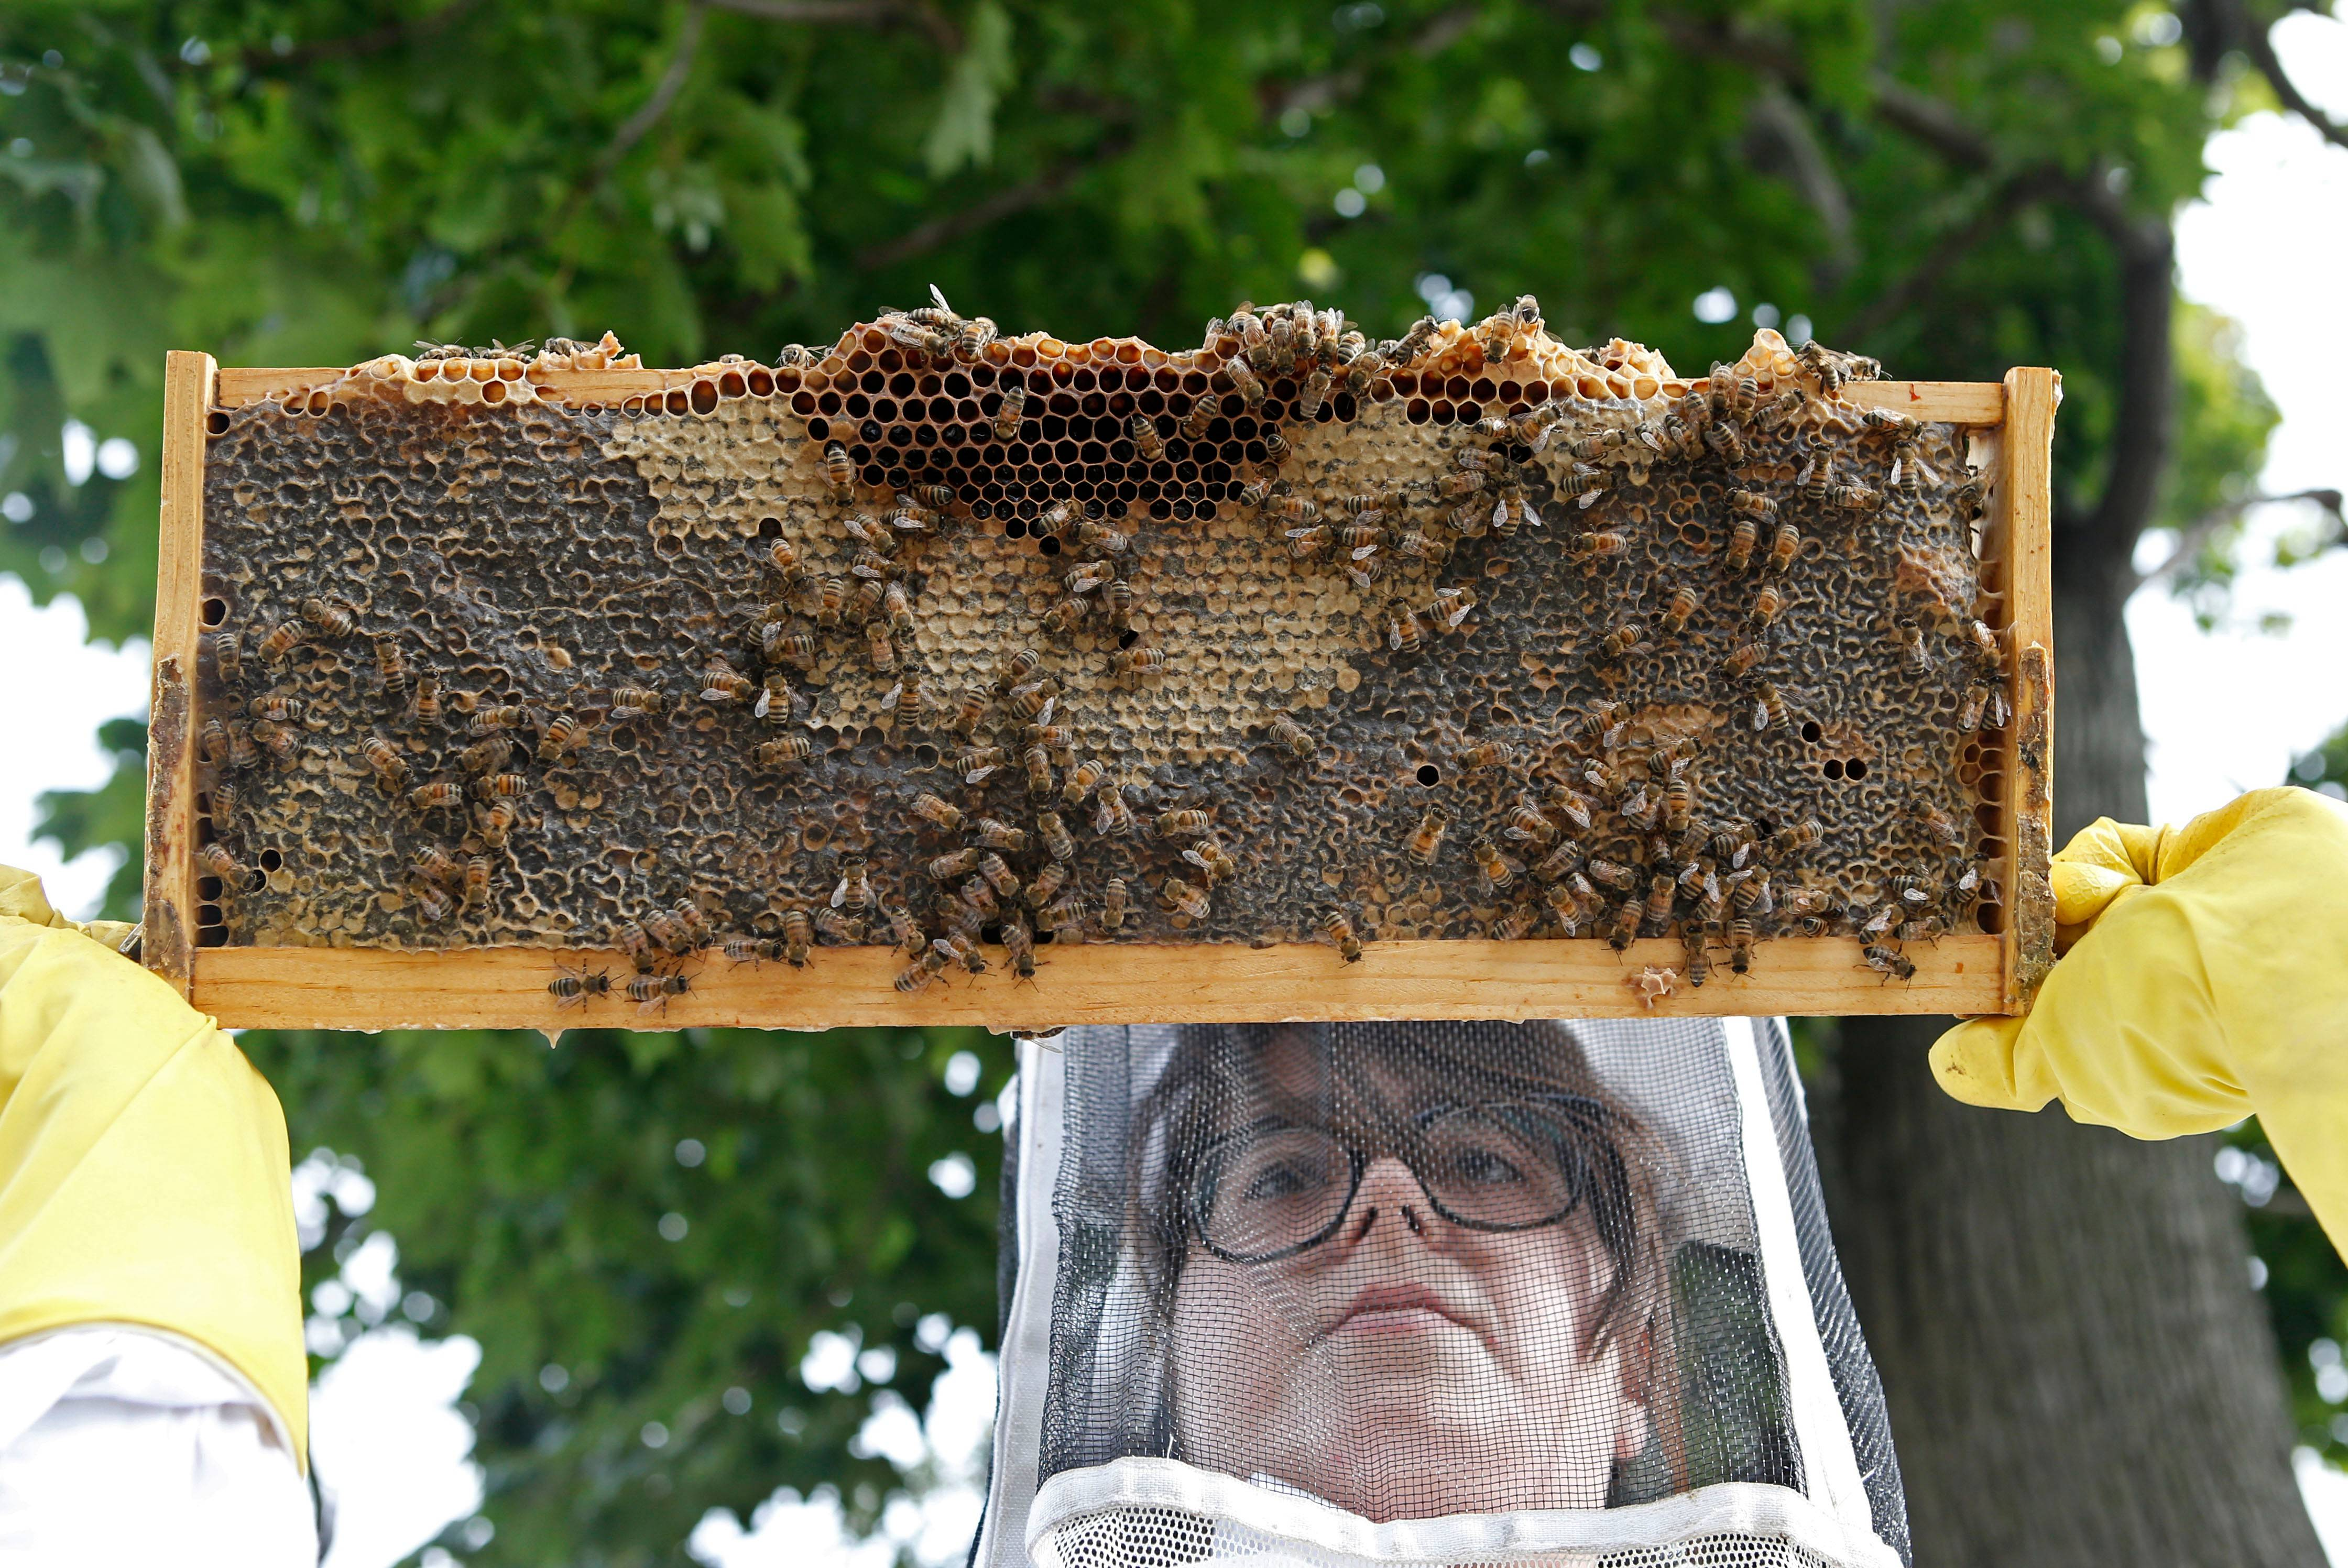 Elgin residents can expect to be allowed to keep honeybees with a $65 permit starting Jan. 1. A final city council vote is expected Dec. 20.